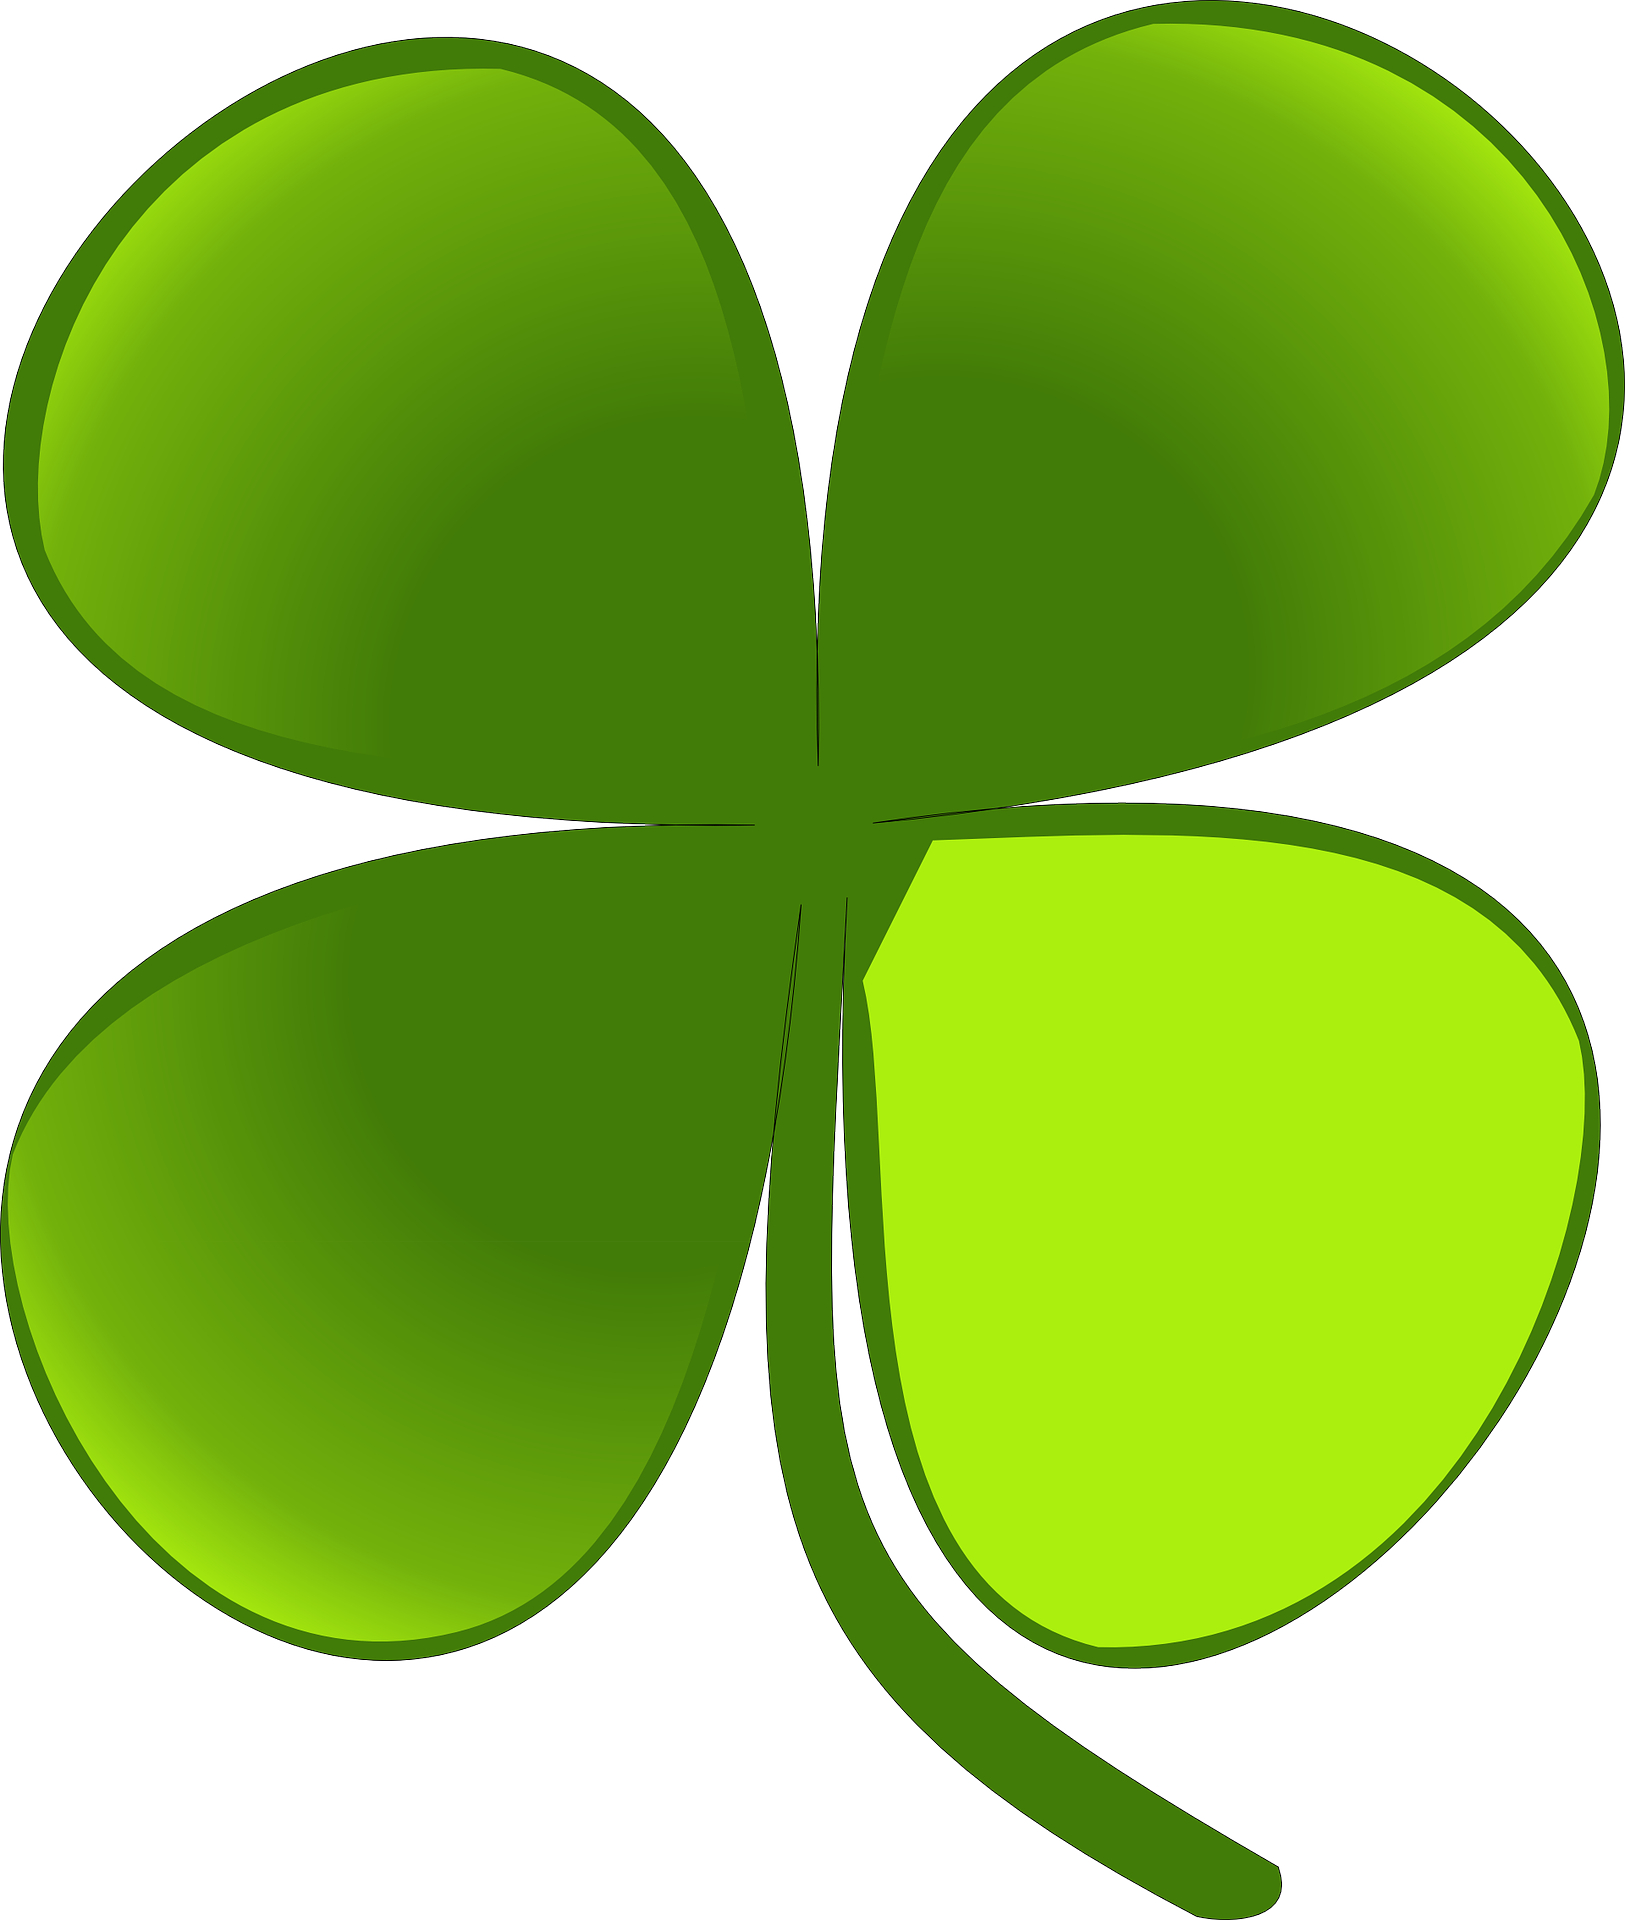 Green plant-cartoon clover vector